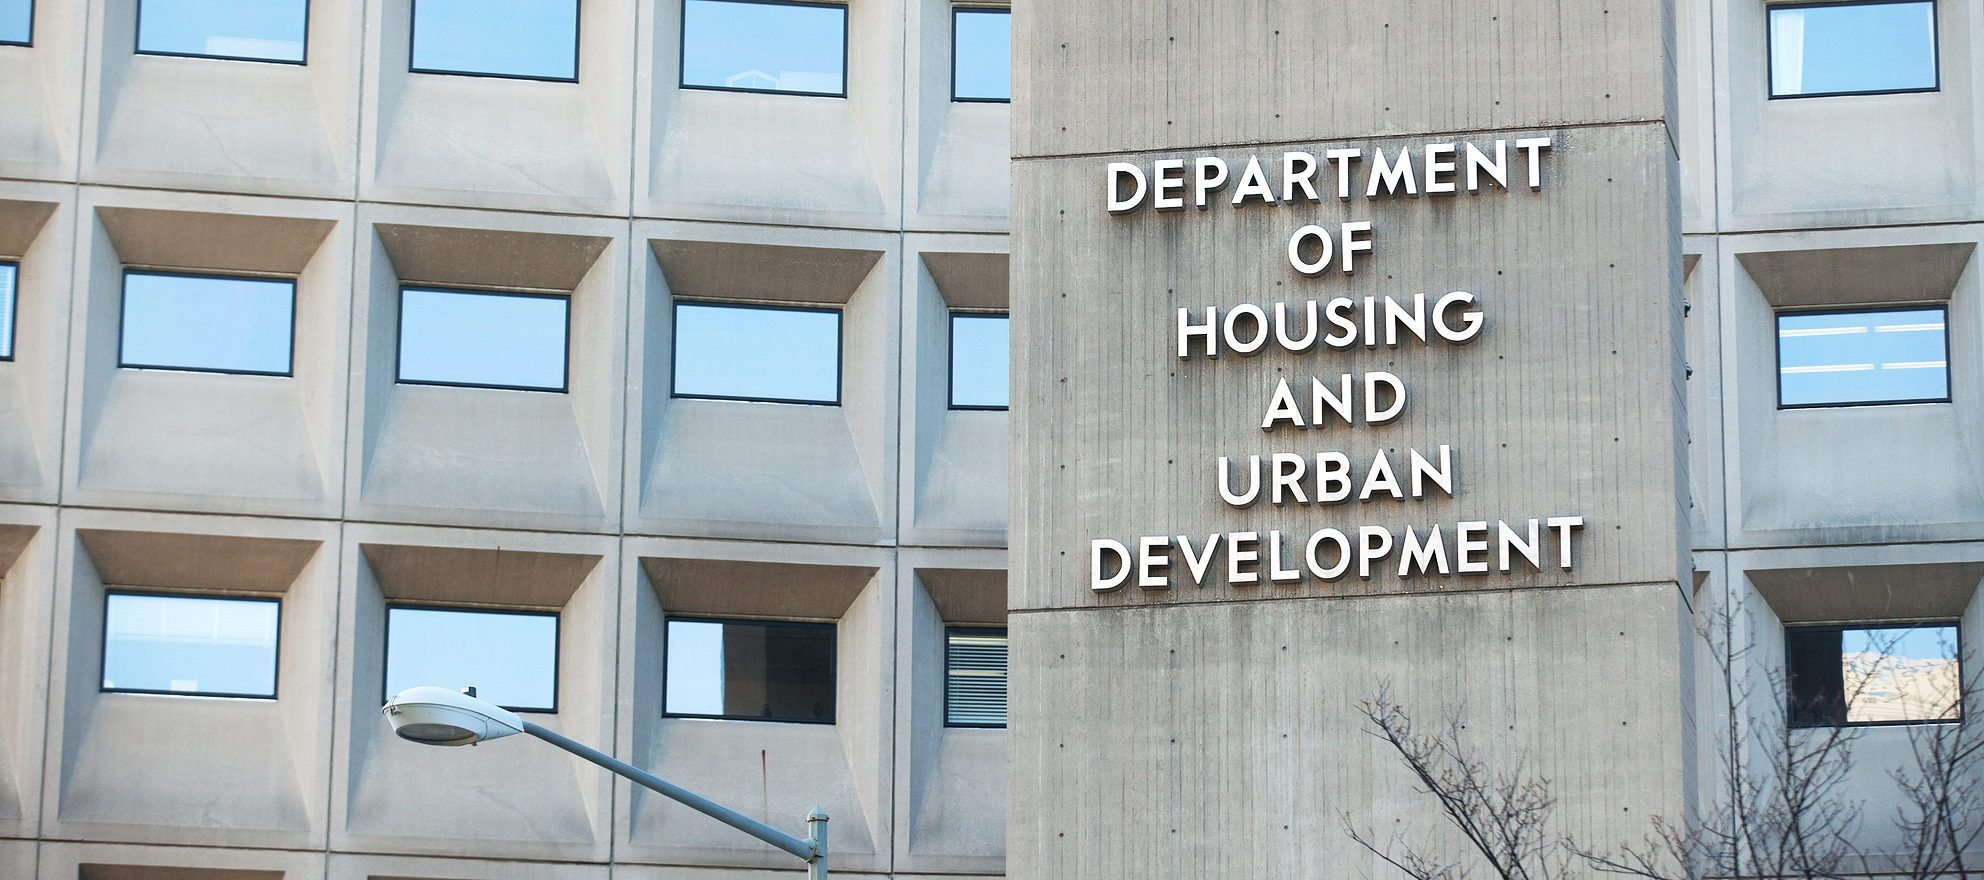 HUD fines california landlords over discrimination